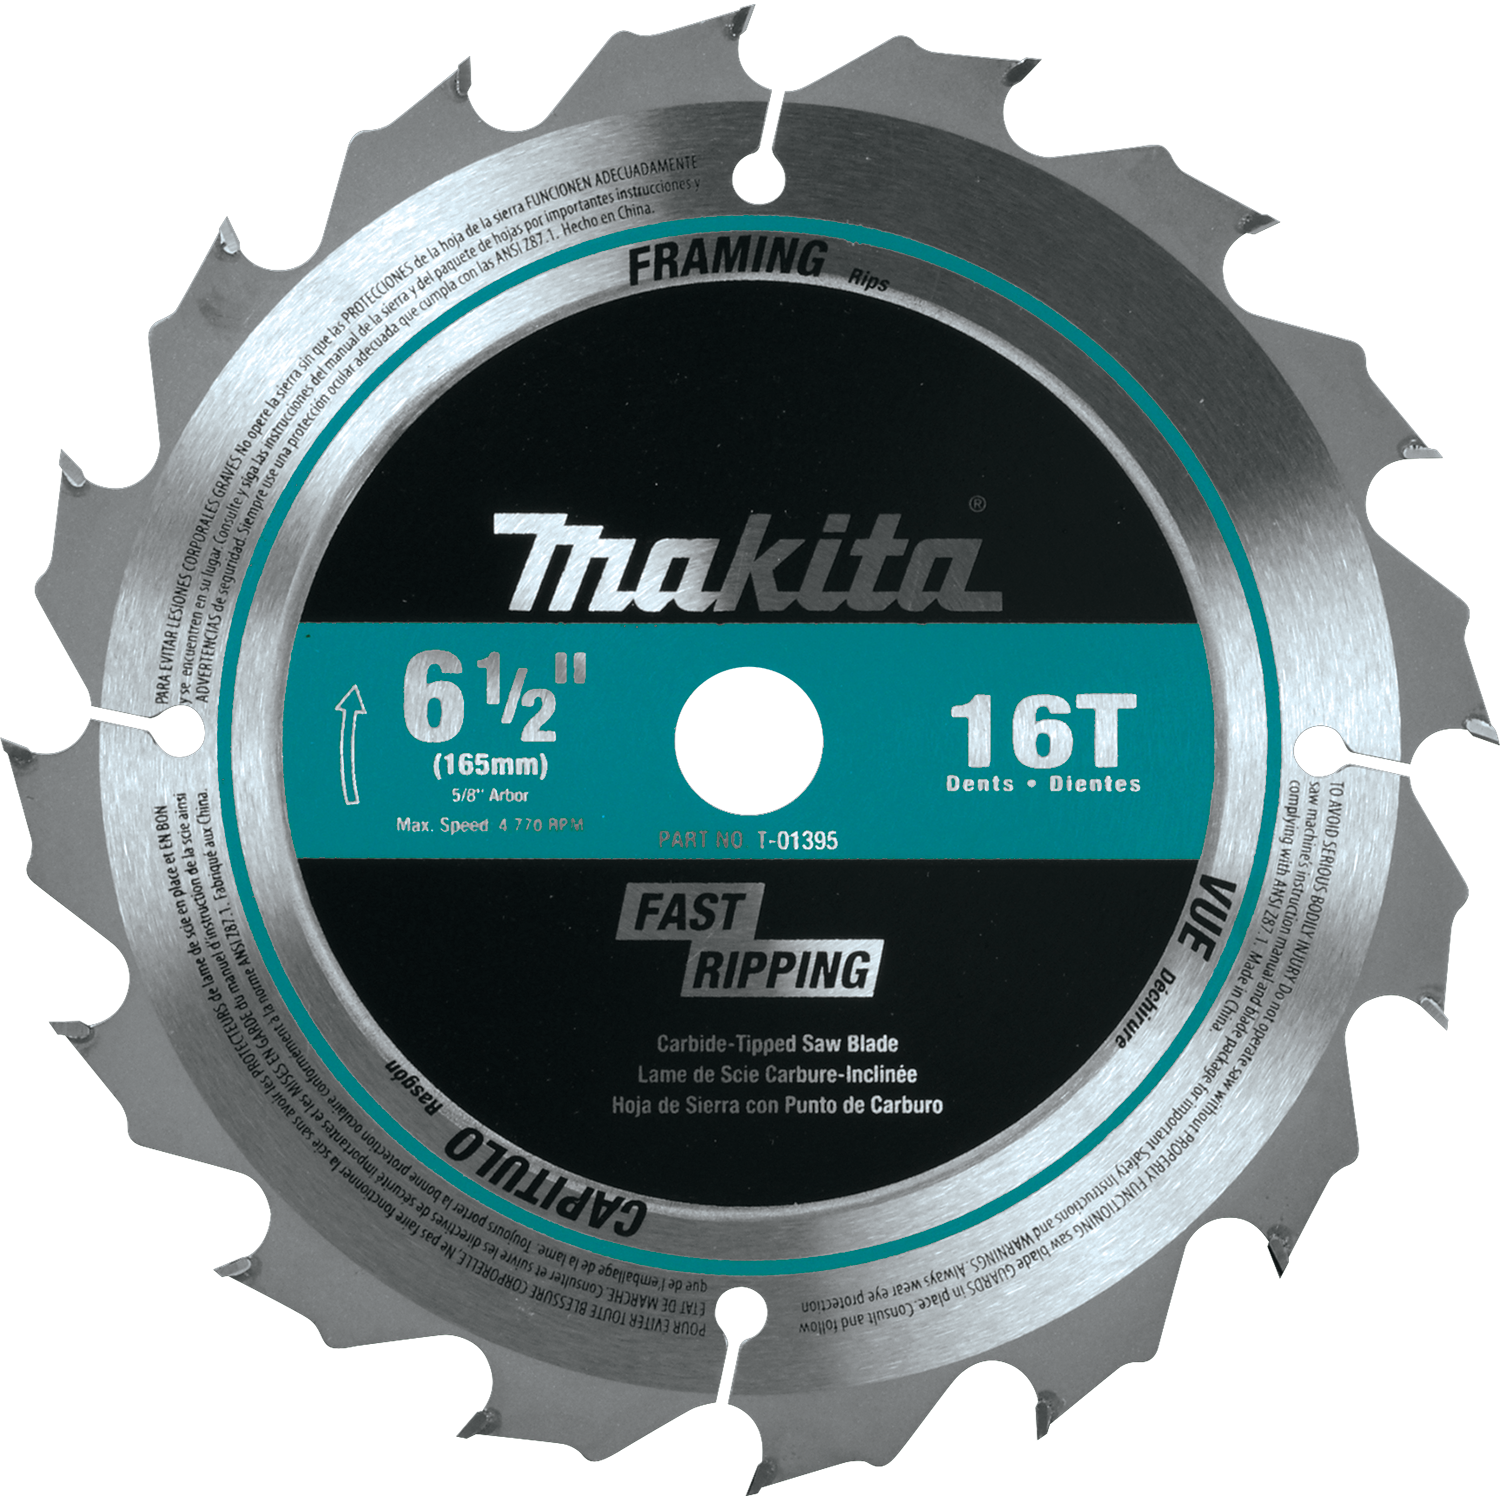 Makita usa product details t 01395 circular saw blade t 01395 greentooth Image collections